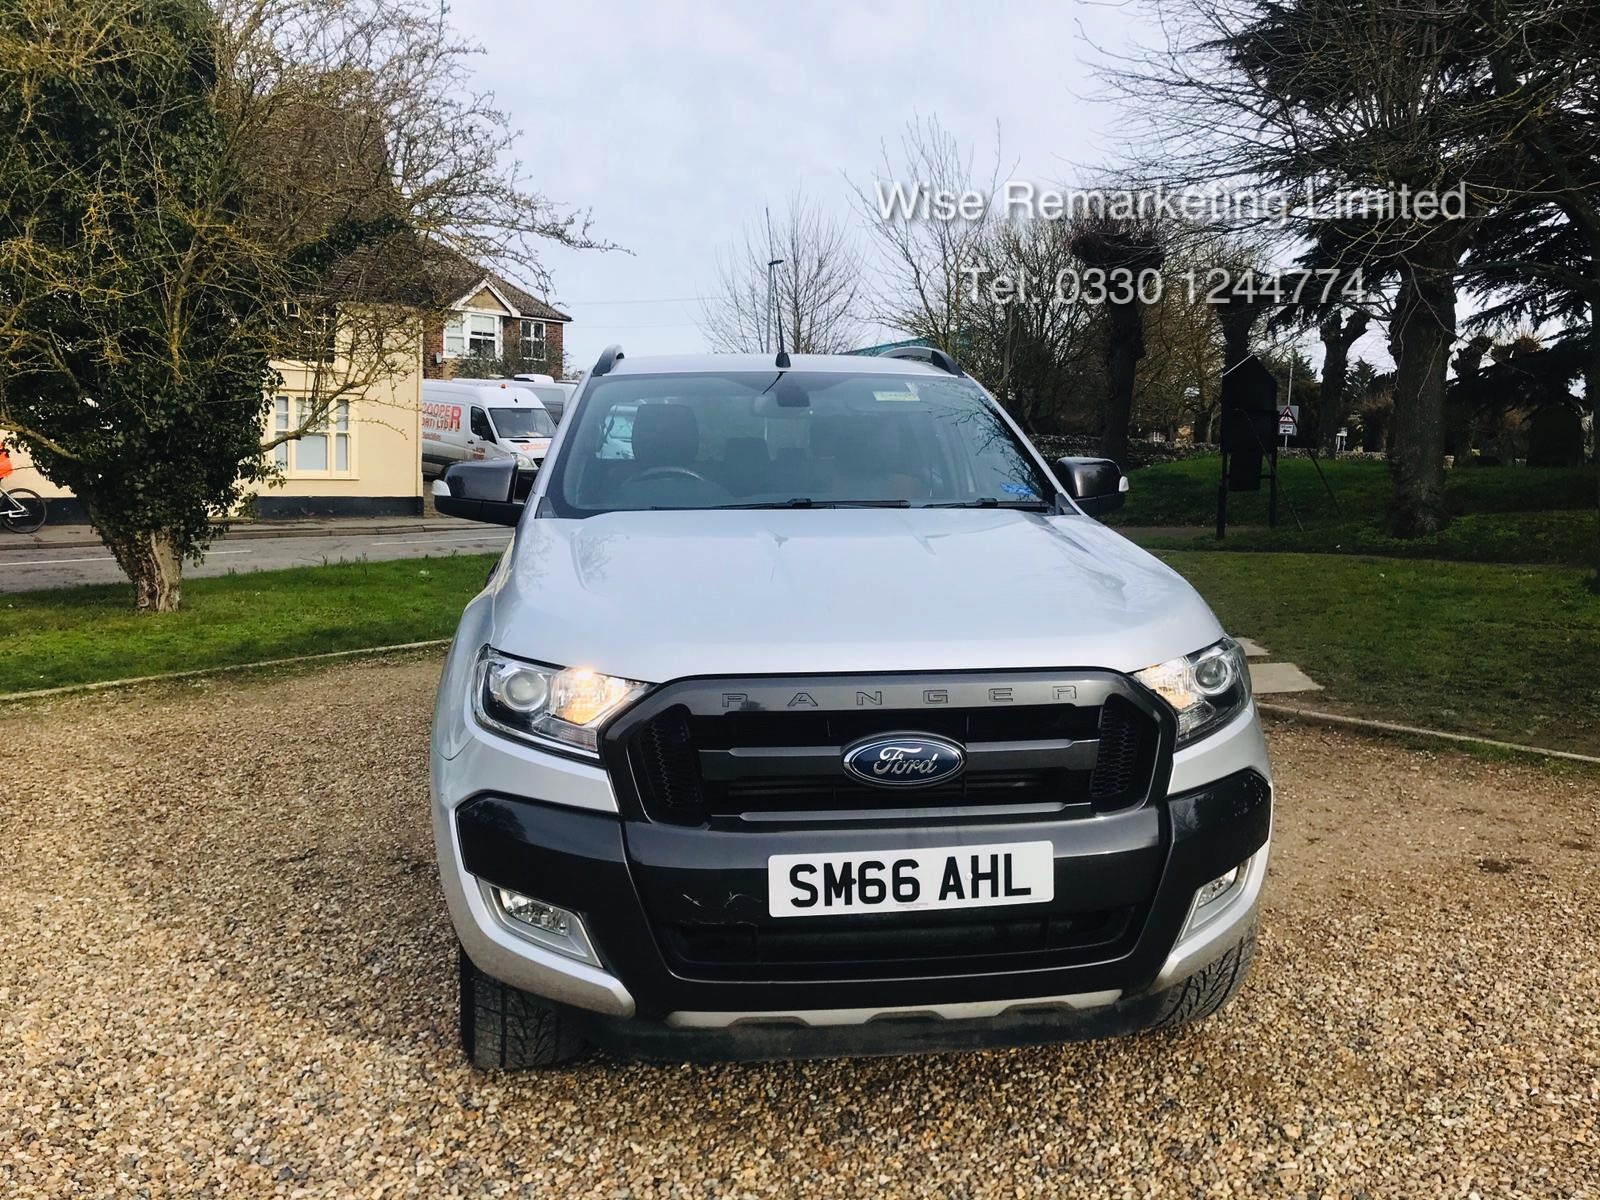 Ford Ranger 3.2 TDCI WILDTRAK - Auto - 2017 Model - 1 Former Keeper - 4x4 - TOP OF THE RANGE - Image 2 of 16